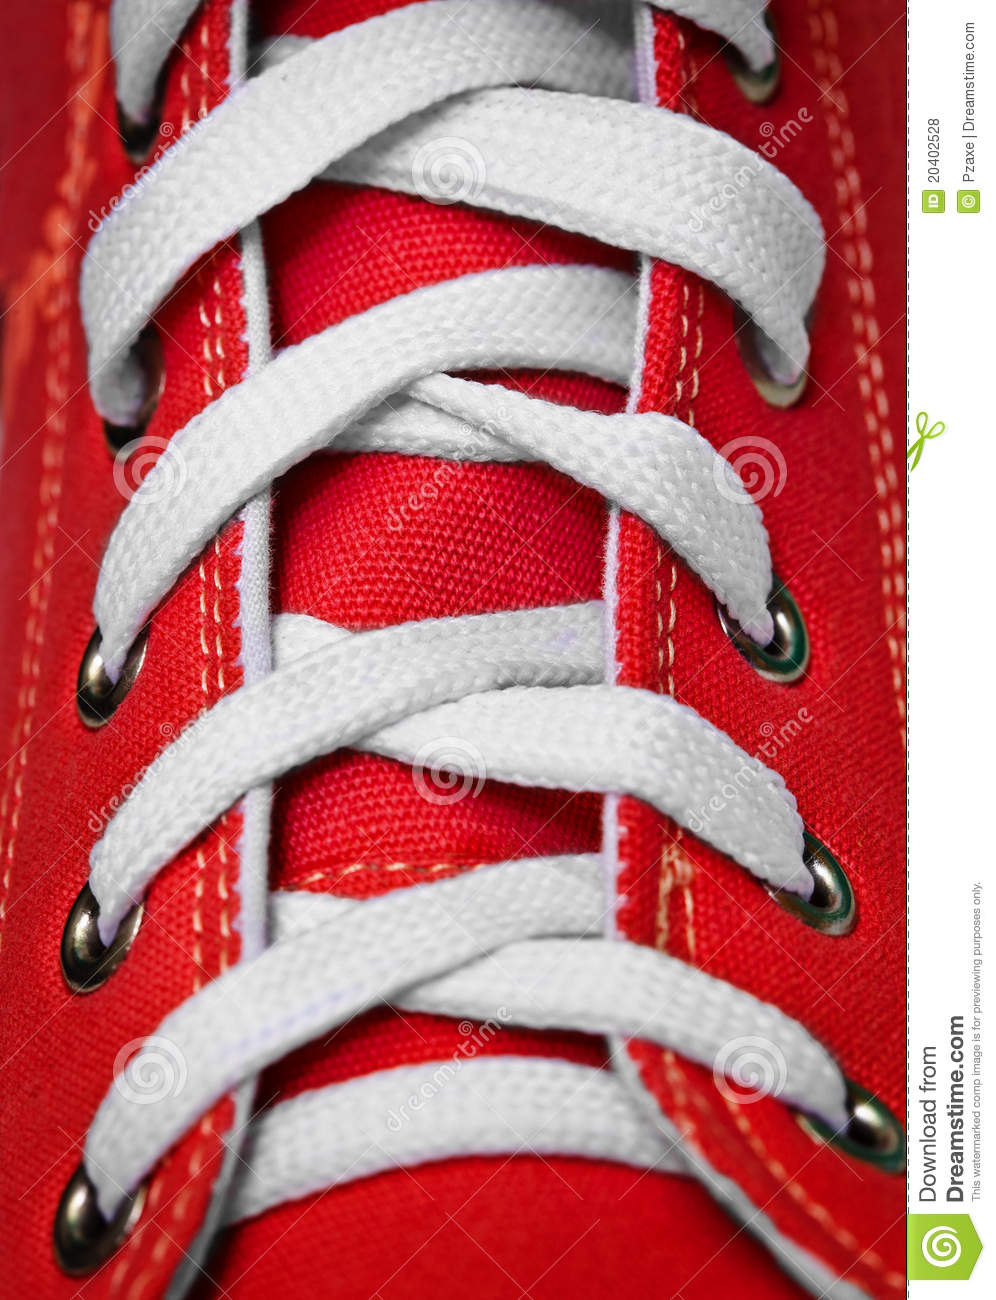 Red old-fashioned gym shoe - lacing